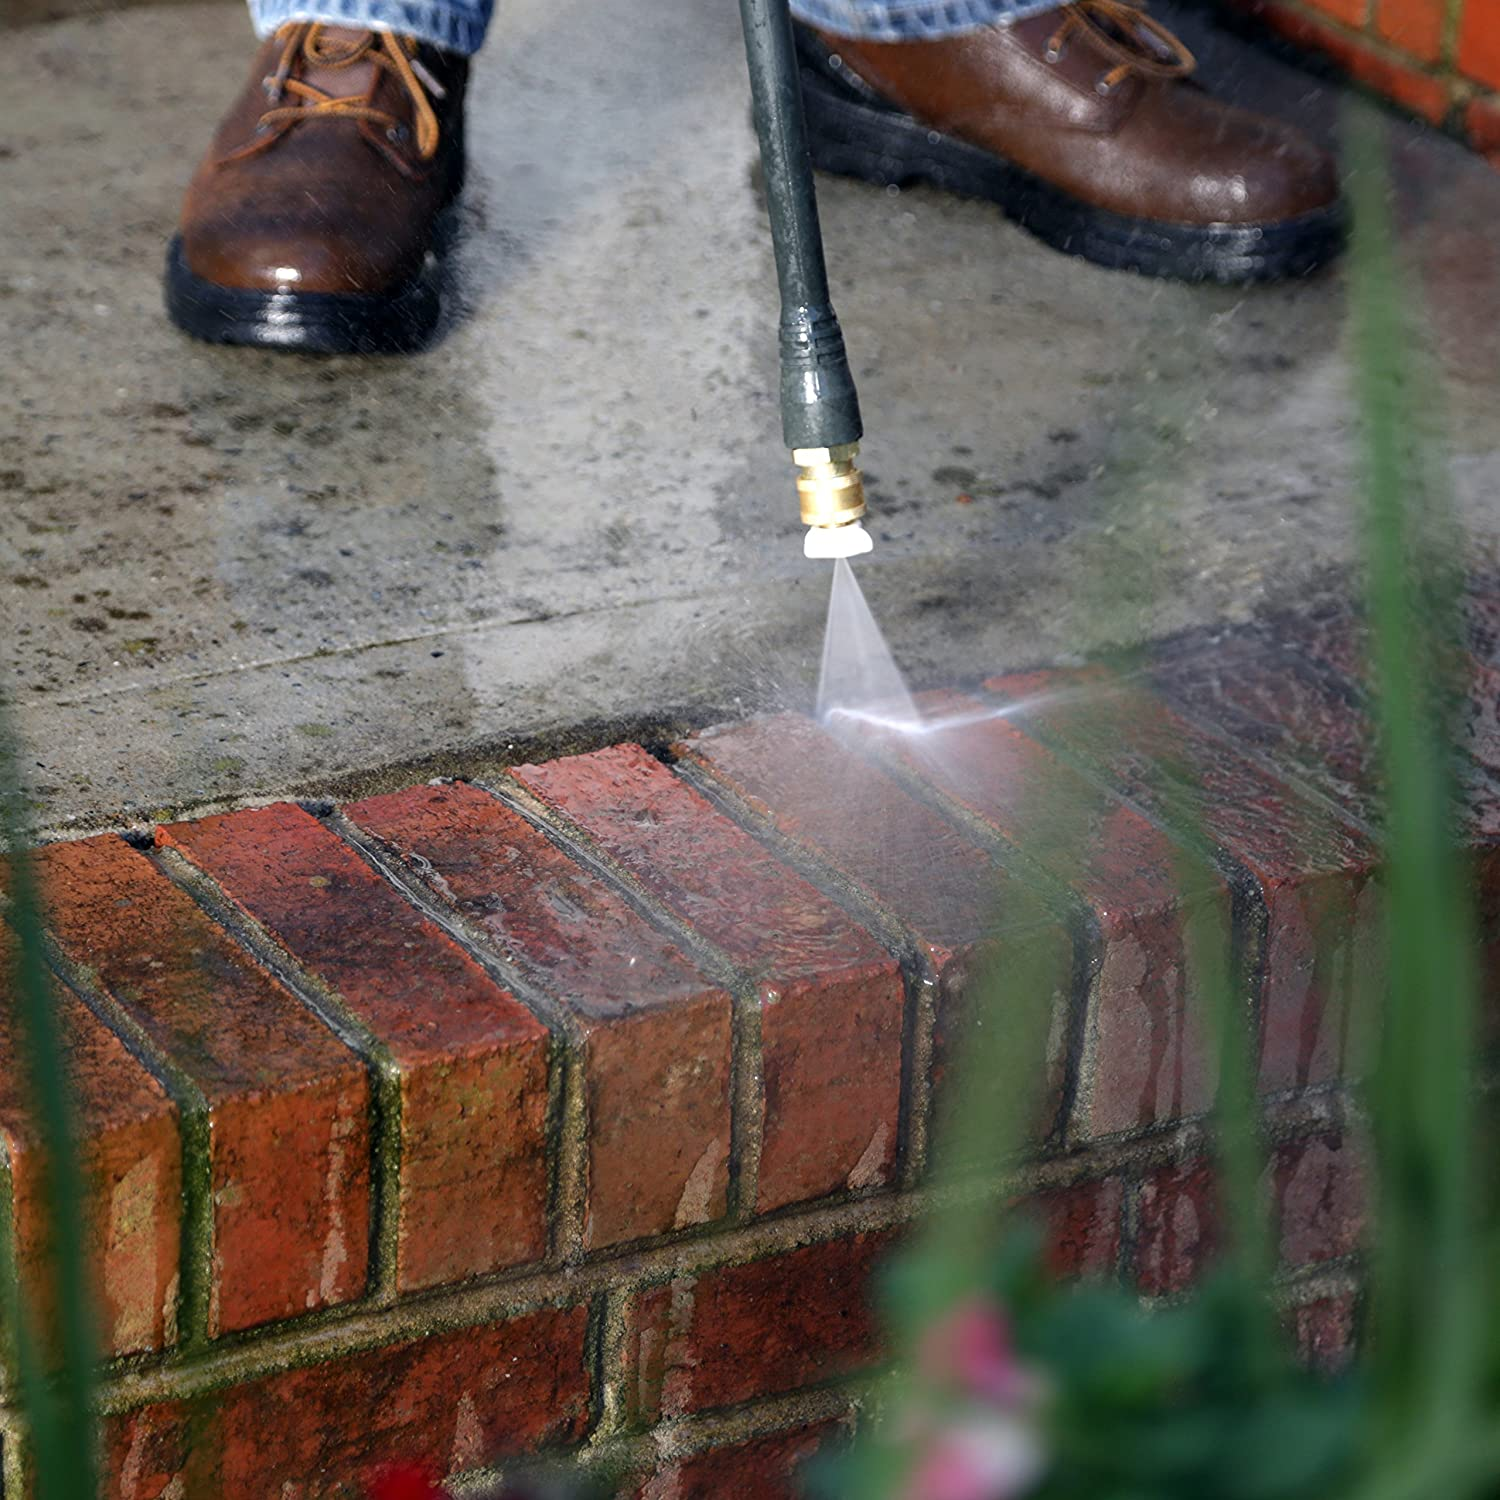 The Best Electric Pressure Washers For Your Garden: Reviews & Buying Guide 9